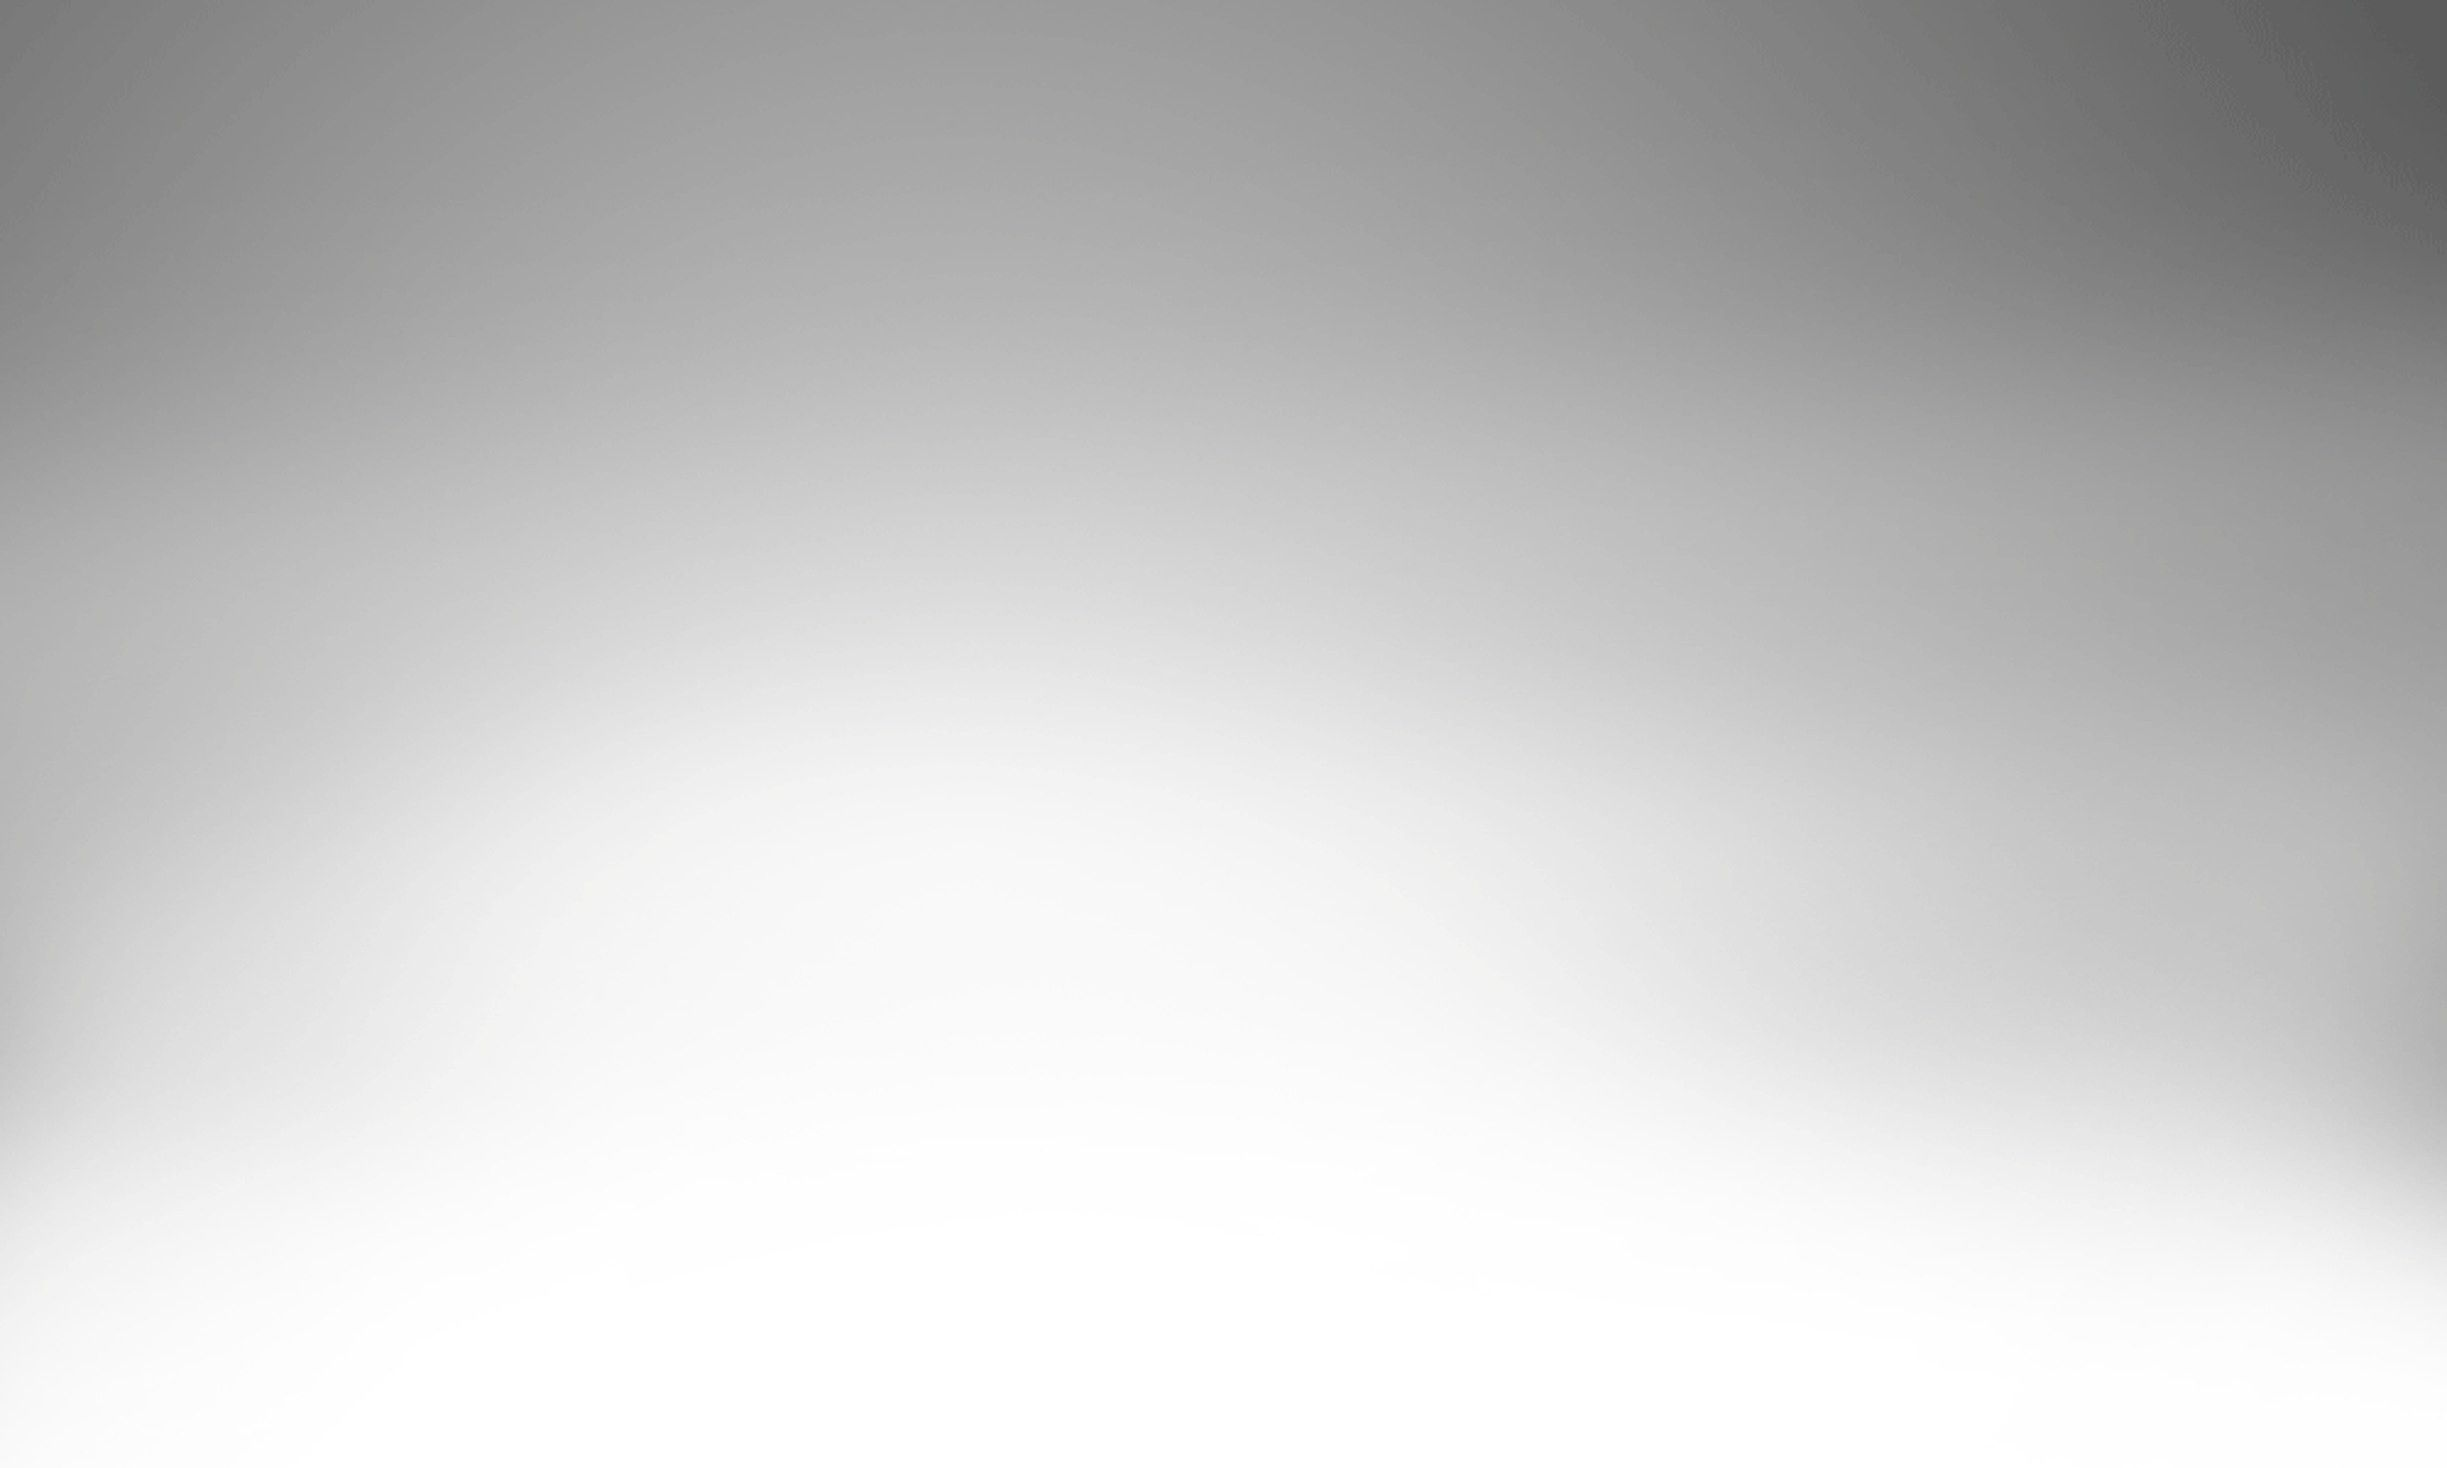 2447x1468 Black And White Gradient Background (108+ images in ...